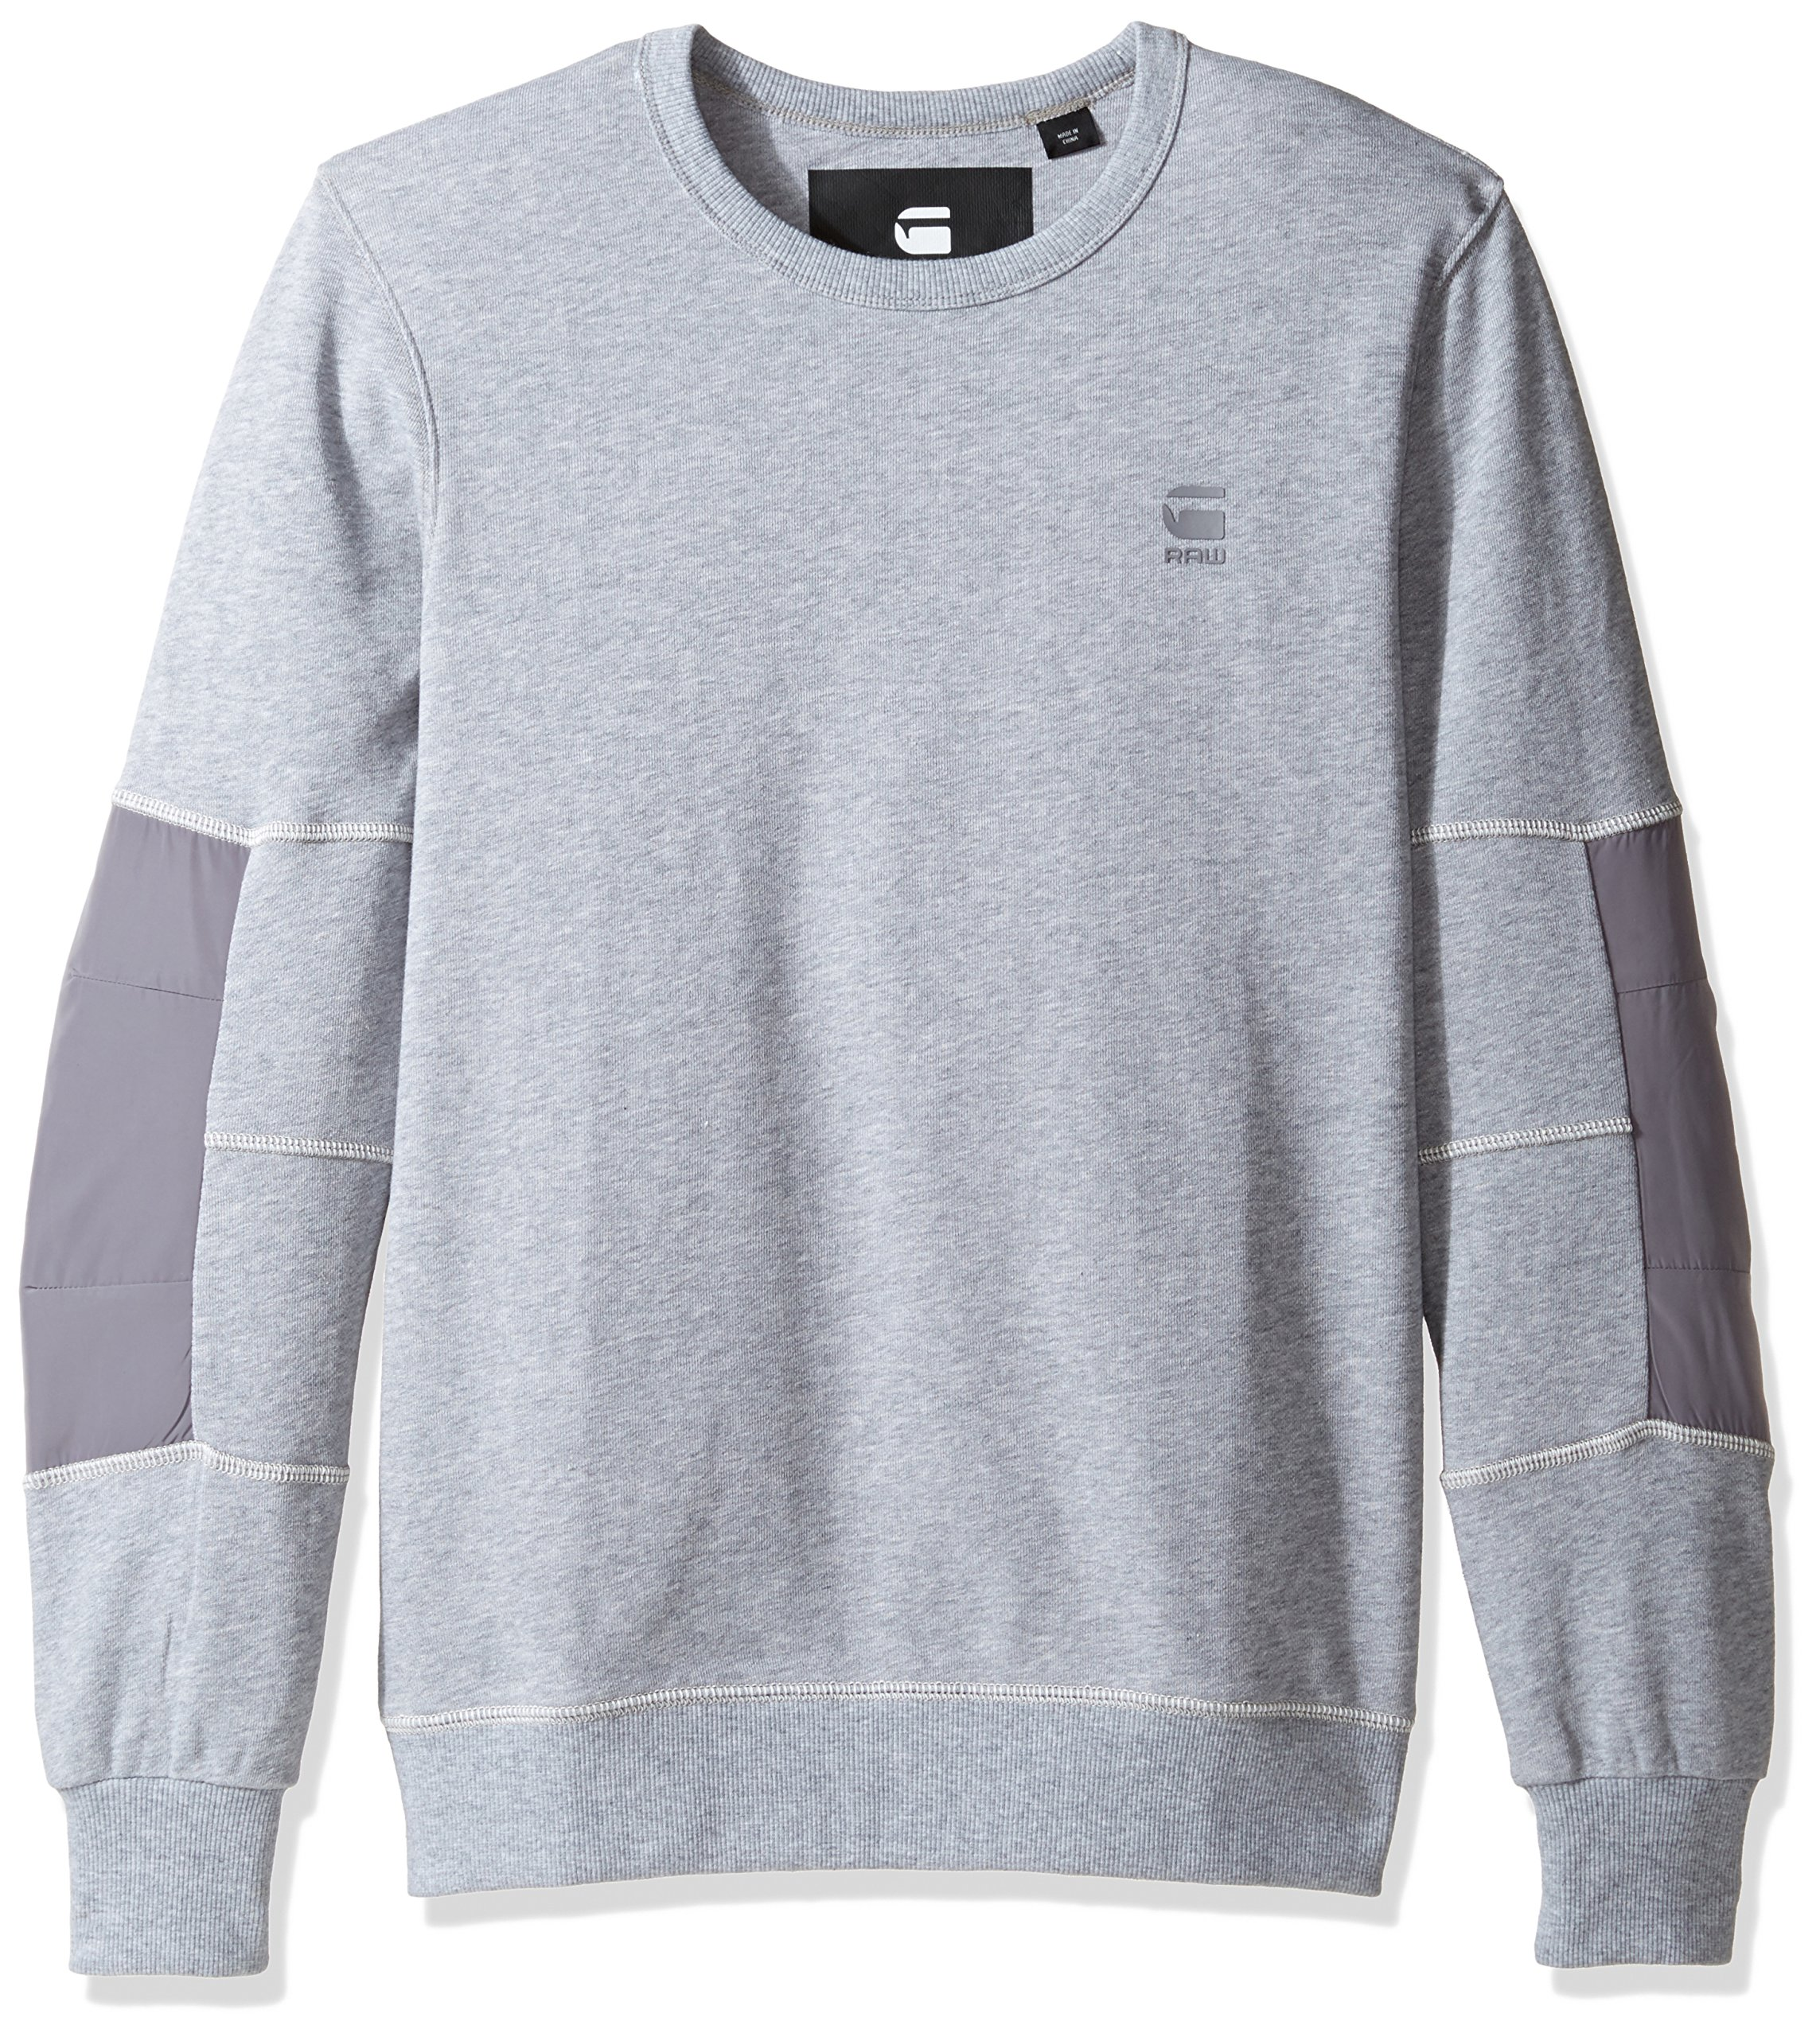 G-Star Raw Men's Rackam R SW L/s, Grey Heather, Large